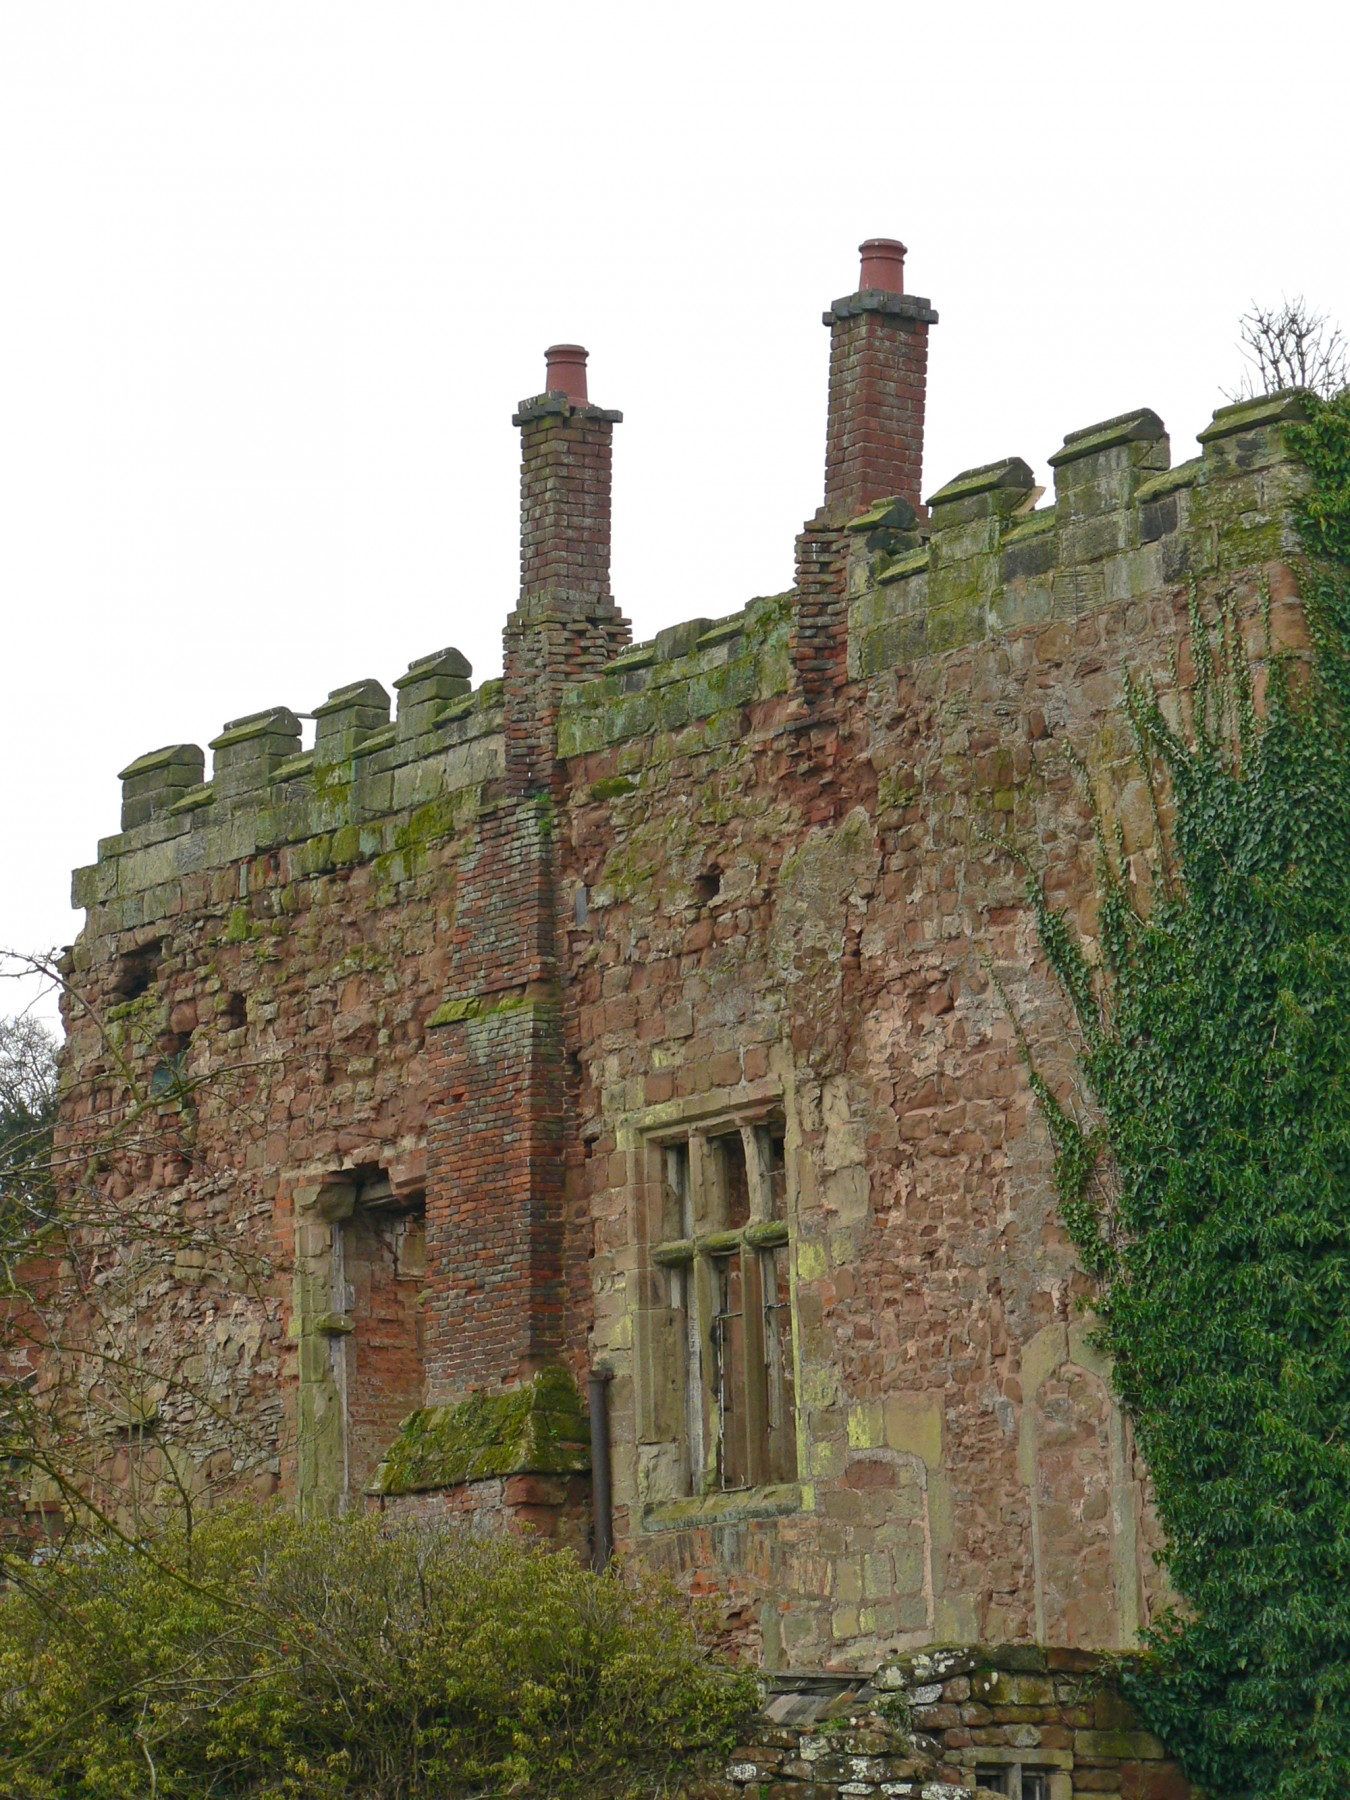 Astley-Castle-competition-accomodation-Nuneaton-Warwickshire-Landmark-trust-English-Heritage-short-list-Jamie-Fobert-architects-site-3